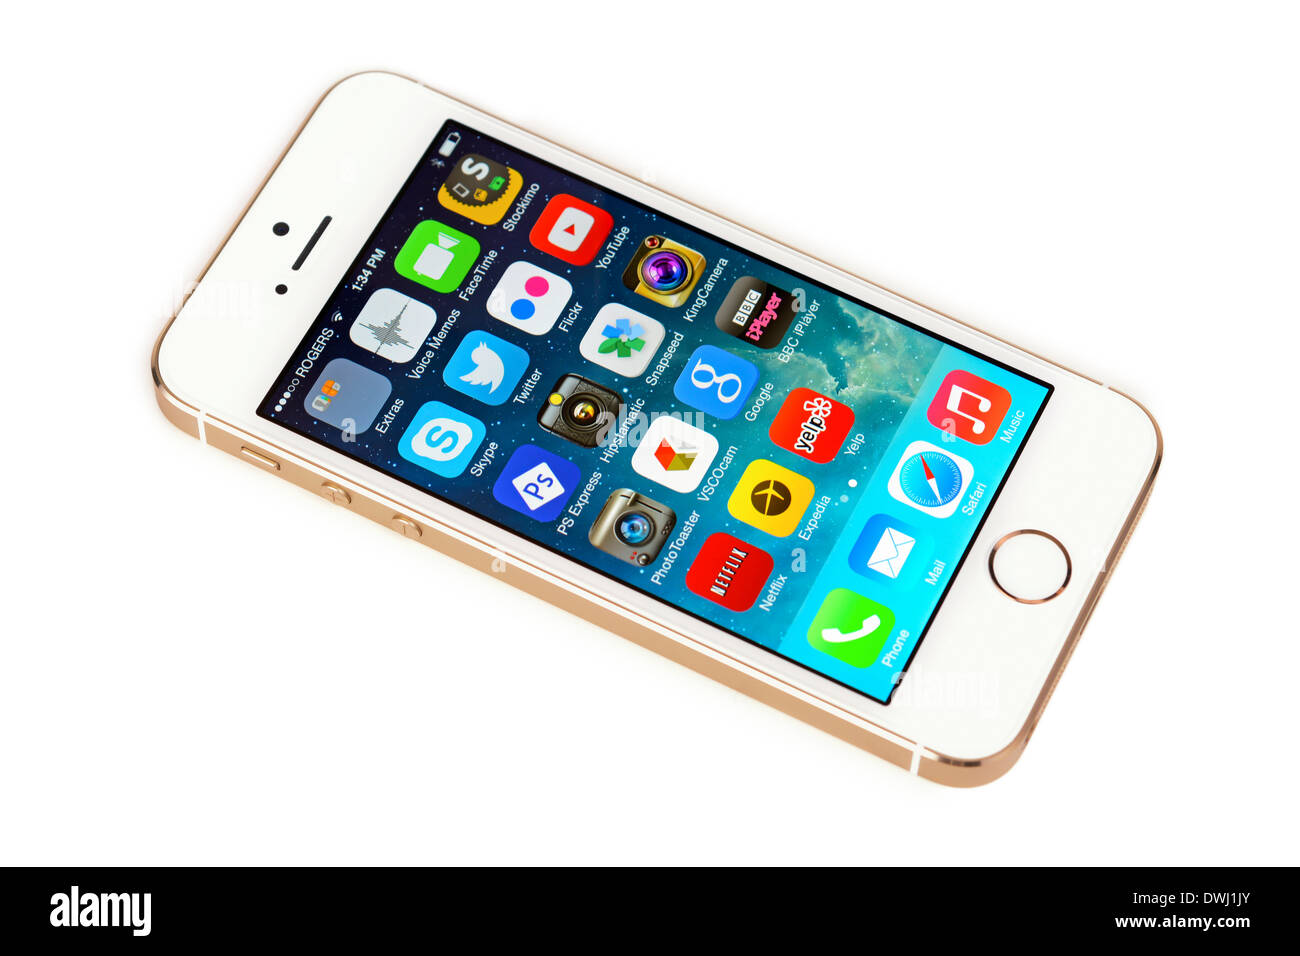 iPhone 5S White Gold, Champagne Apple iPhone 5 S - Stock Image